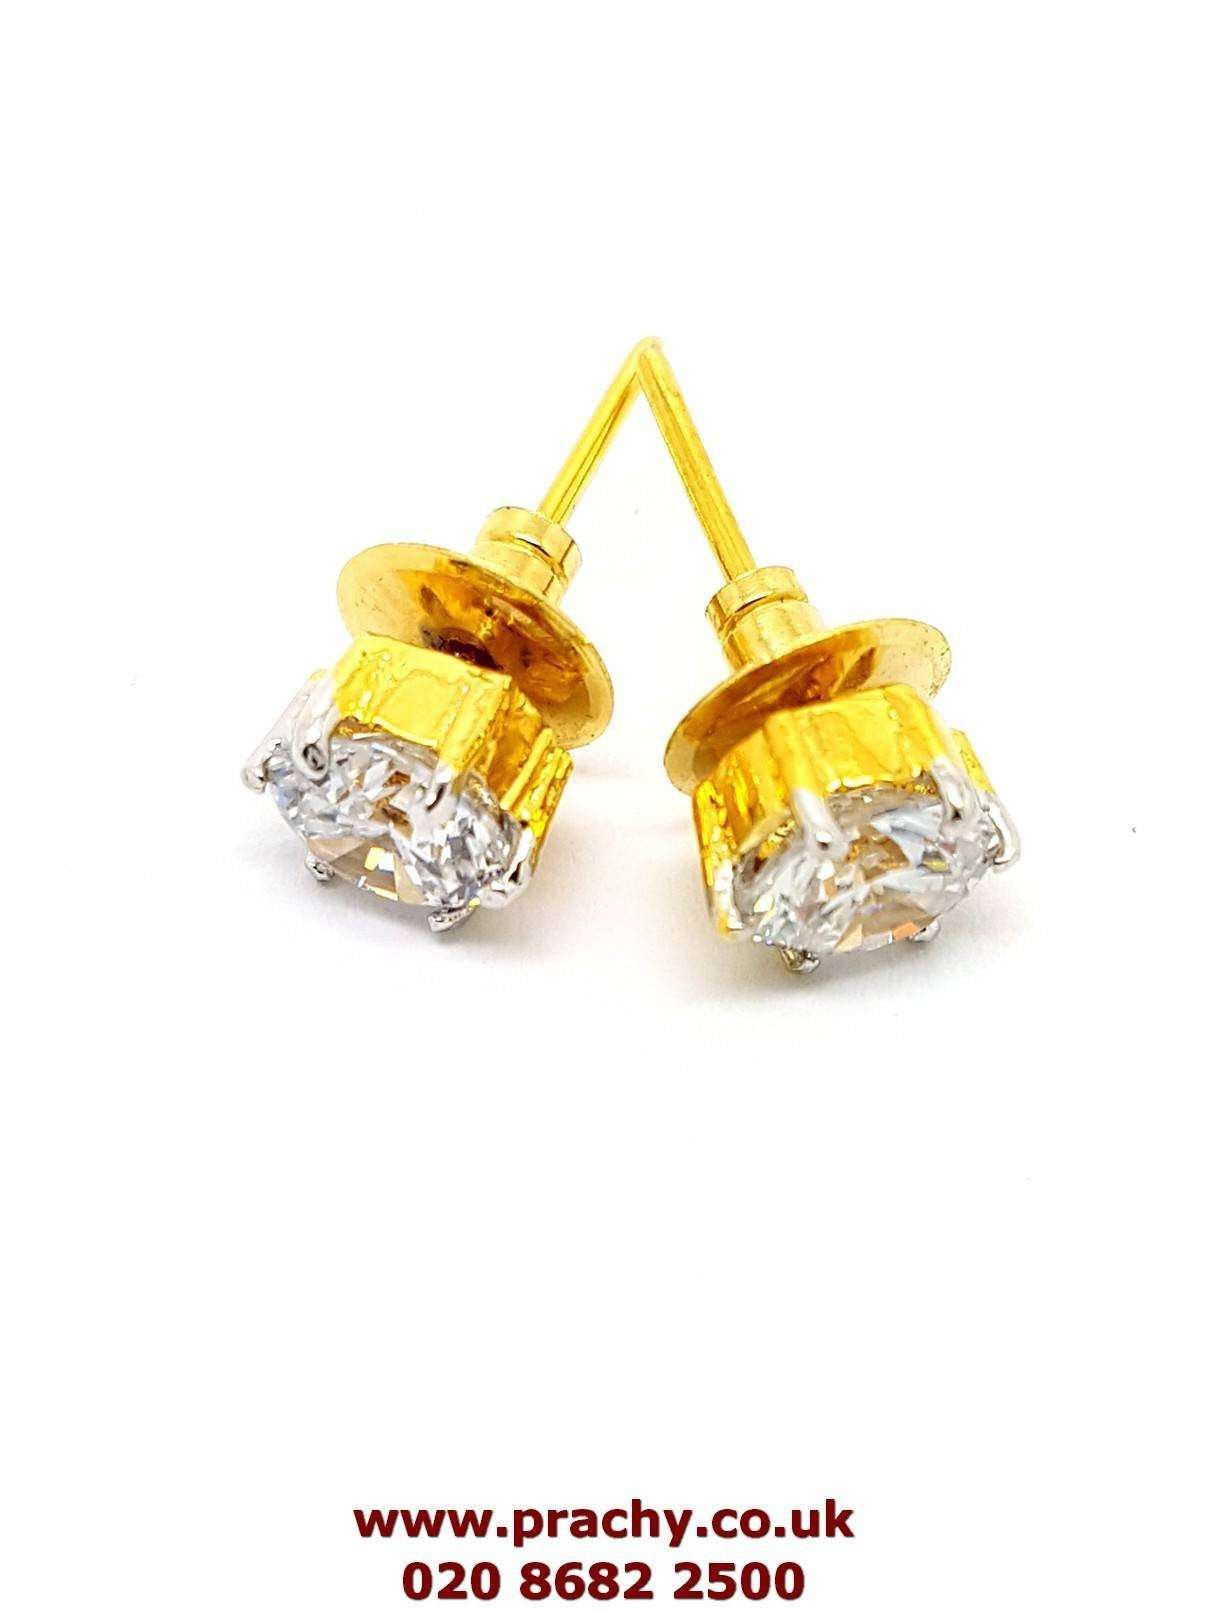 Prachy Creations : AJER 1716 kp 0217 AD Stud earrings